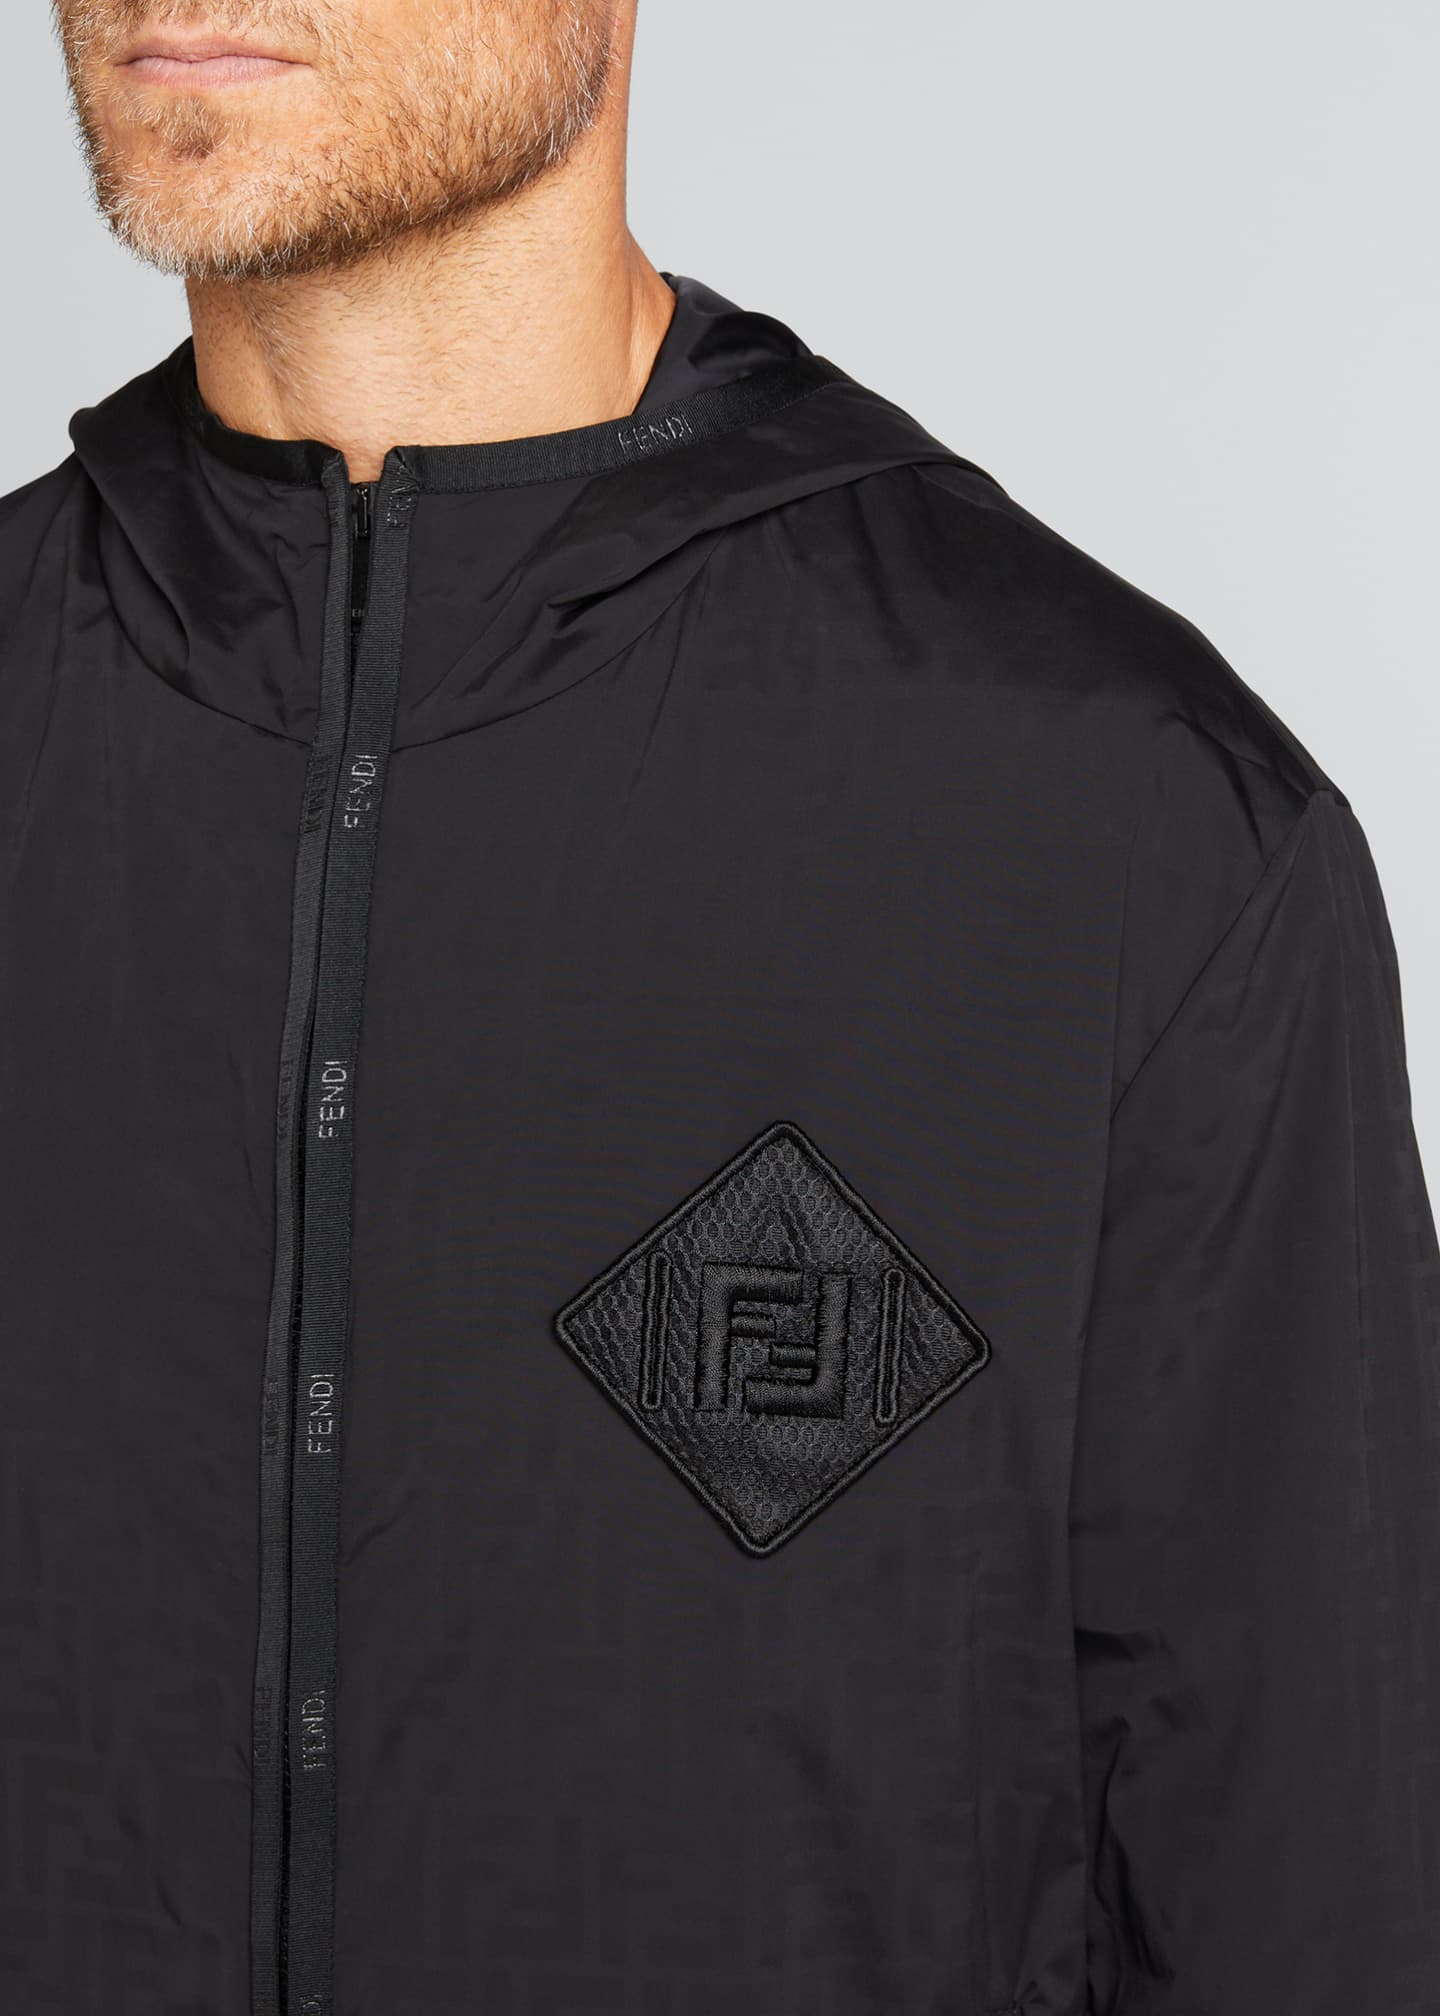 Image 4 of 4: Men's FF Water Reveal Wind-Resistant Jacket